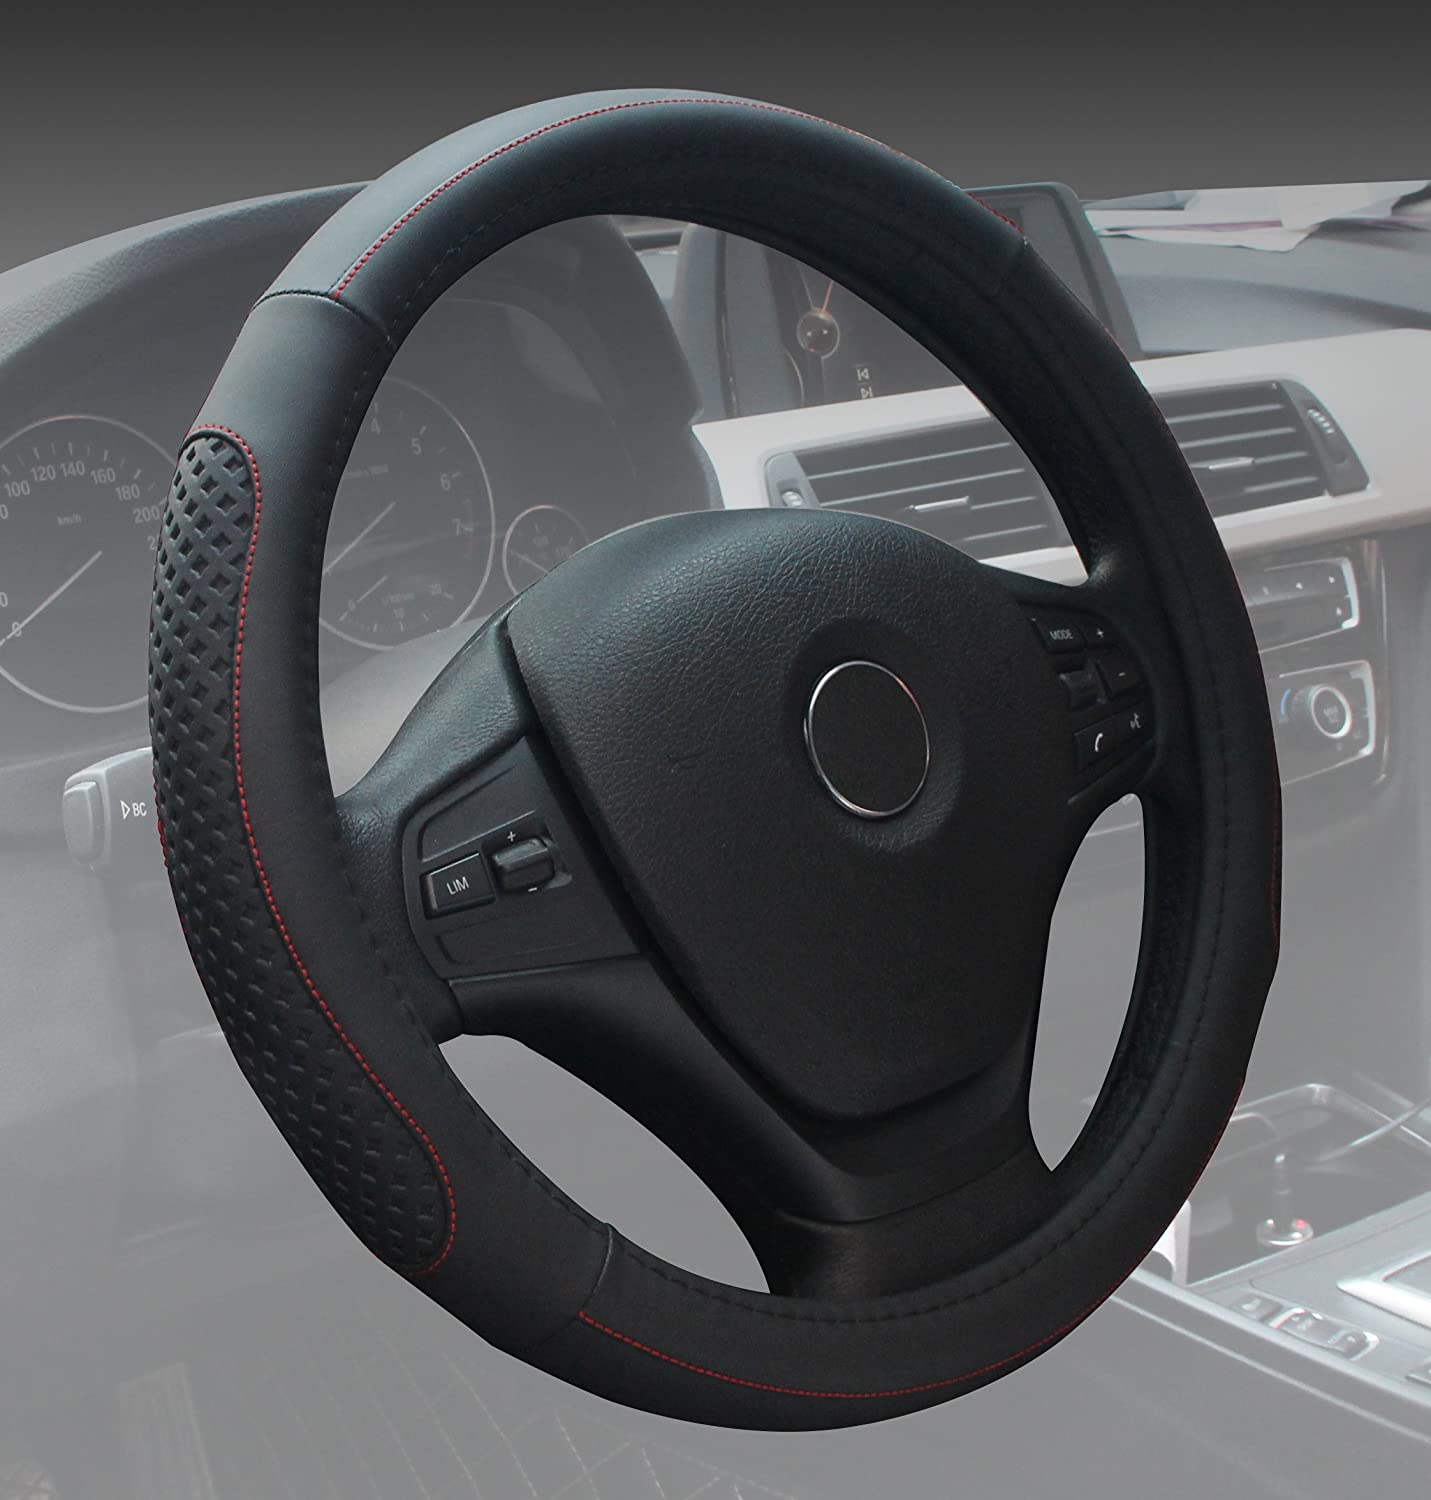 Steering Wheel Covers Universal 15 inch Genuine Leather Protector Anti-Slip Durable Breathable Sports Wave Pattern Black with Black Lines SuperArt